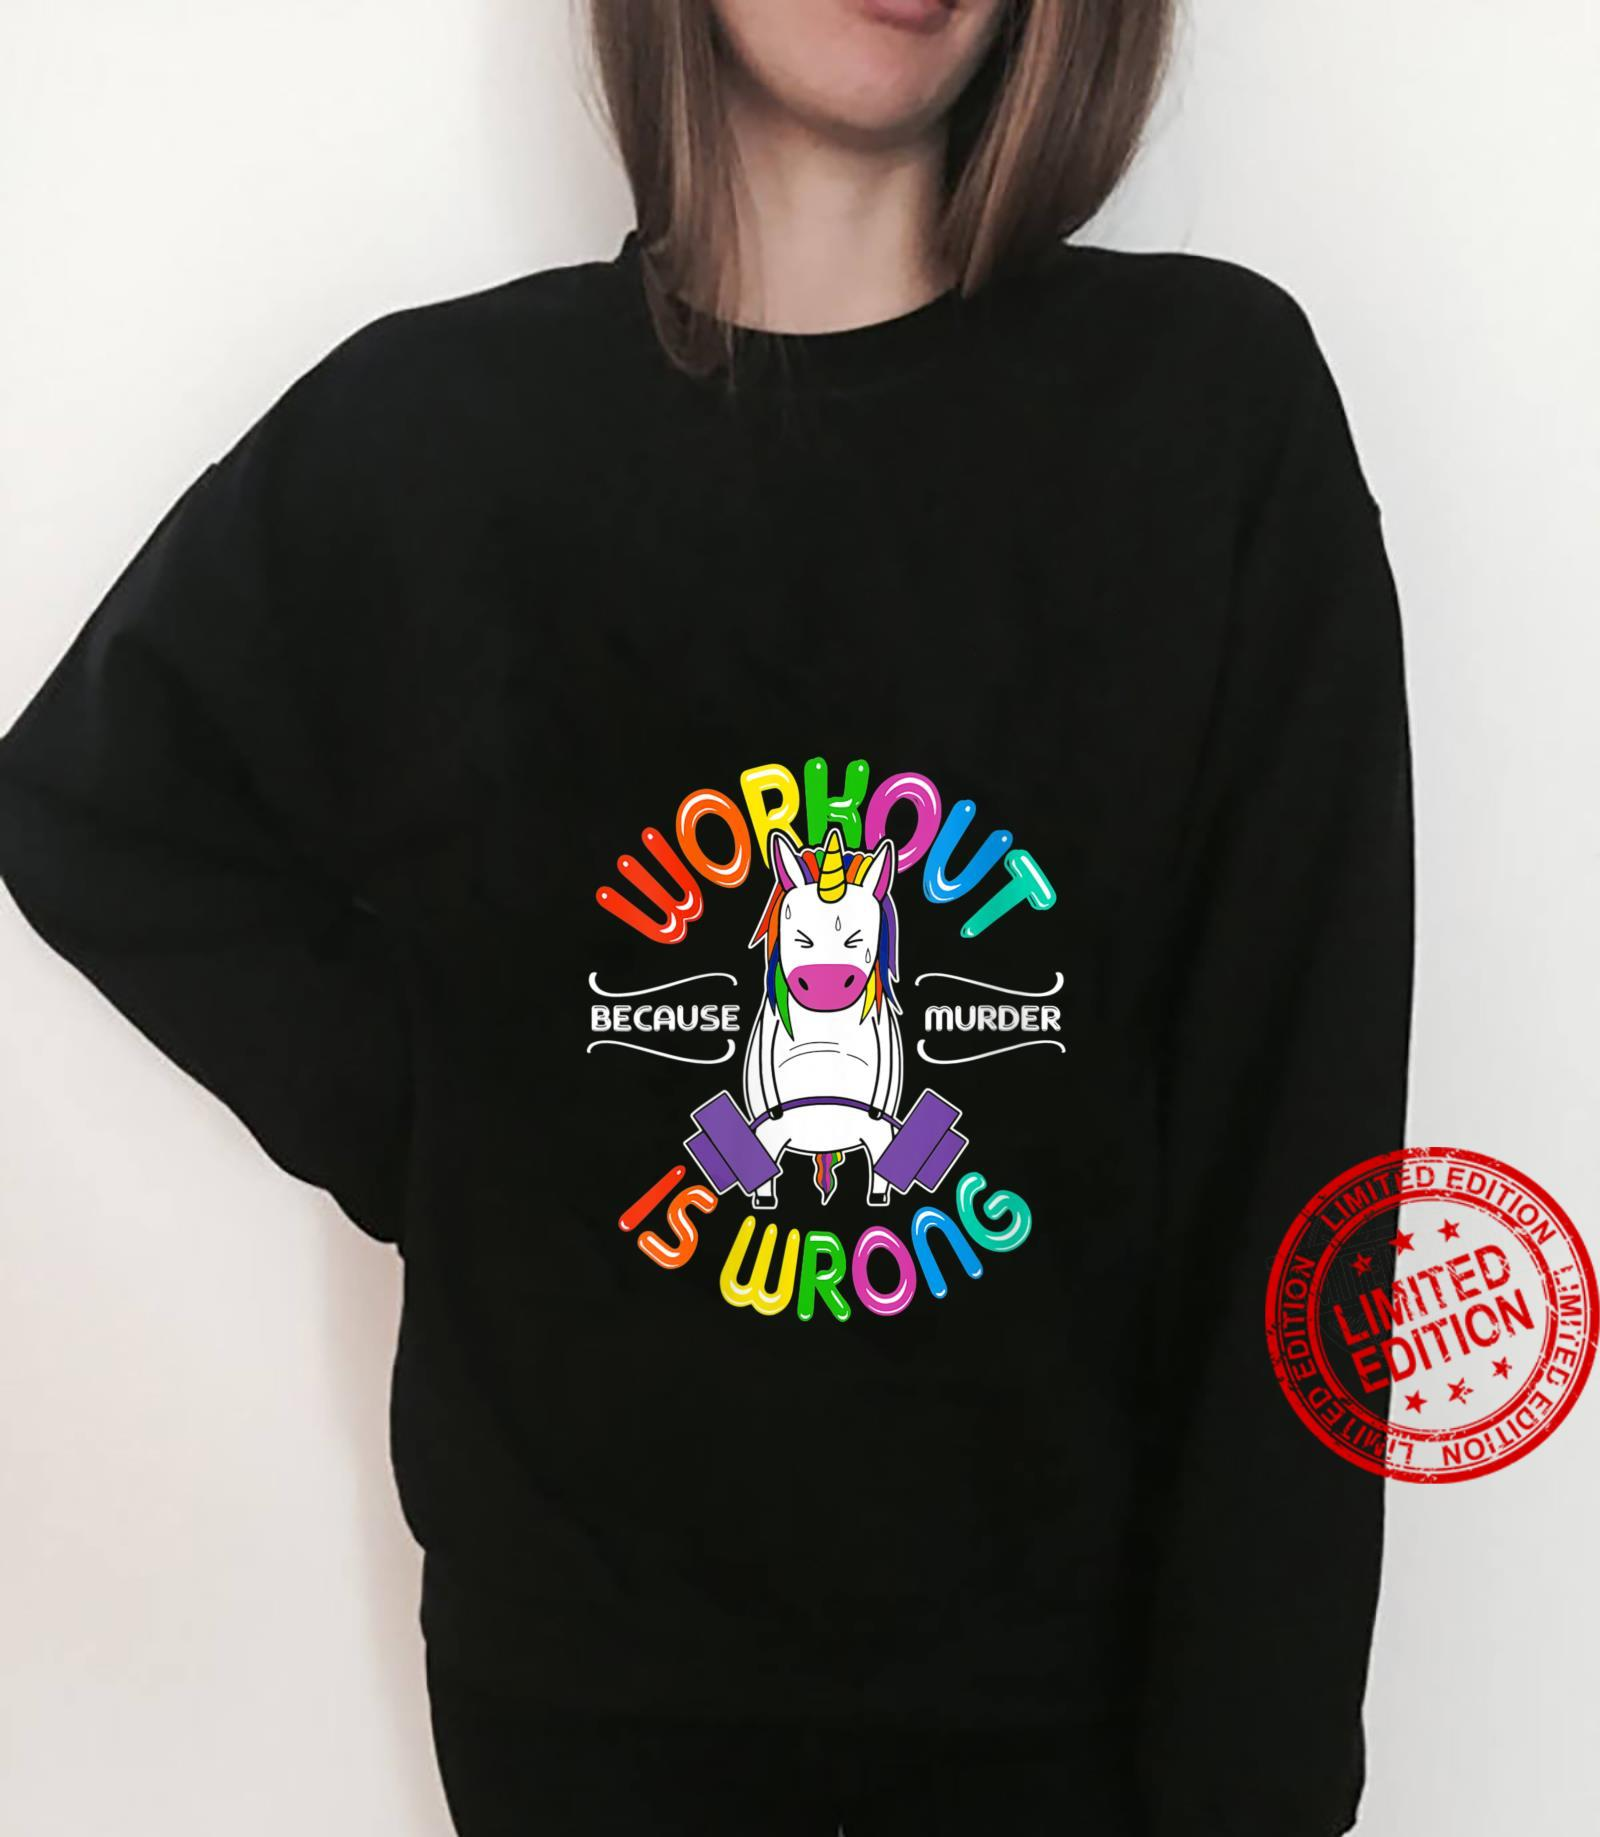 Womens Workout because murder is wrong unicorn Shirt sweater